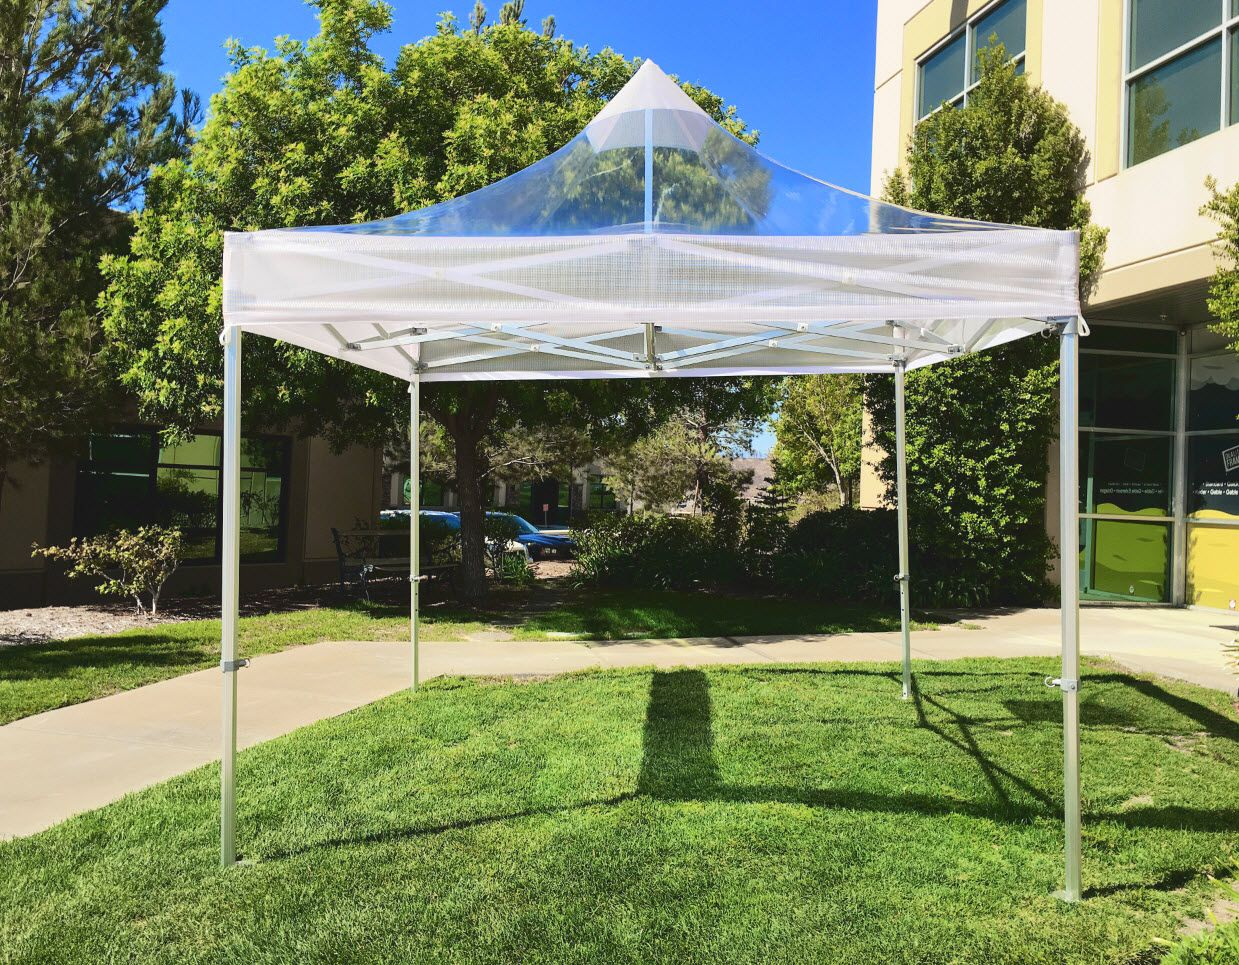 10x10 commercial clear popup tent central tent canopy